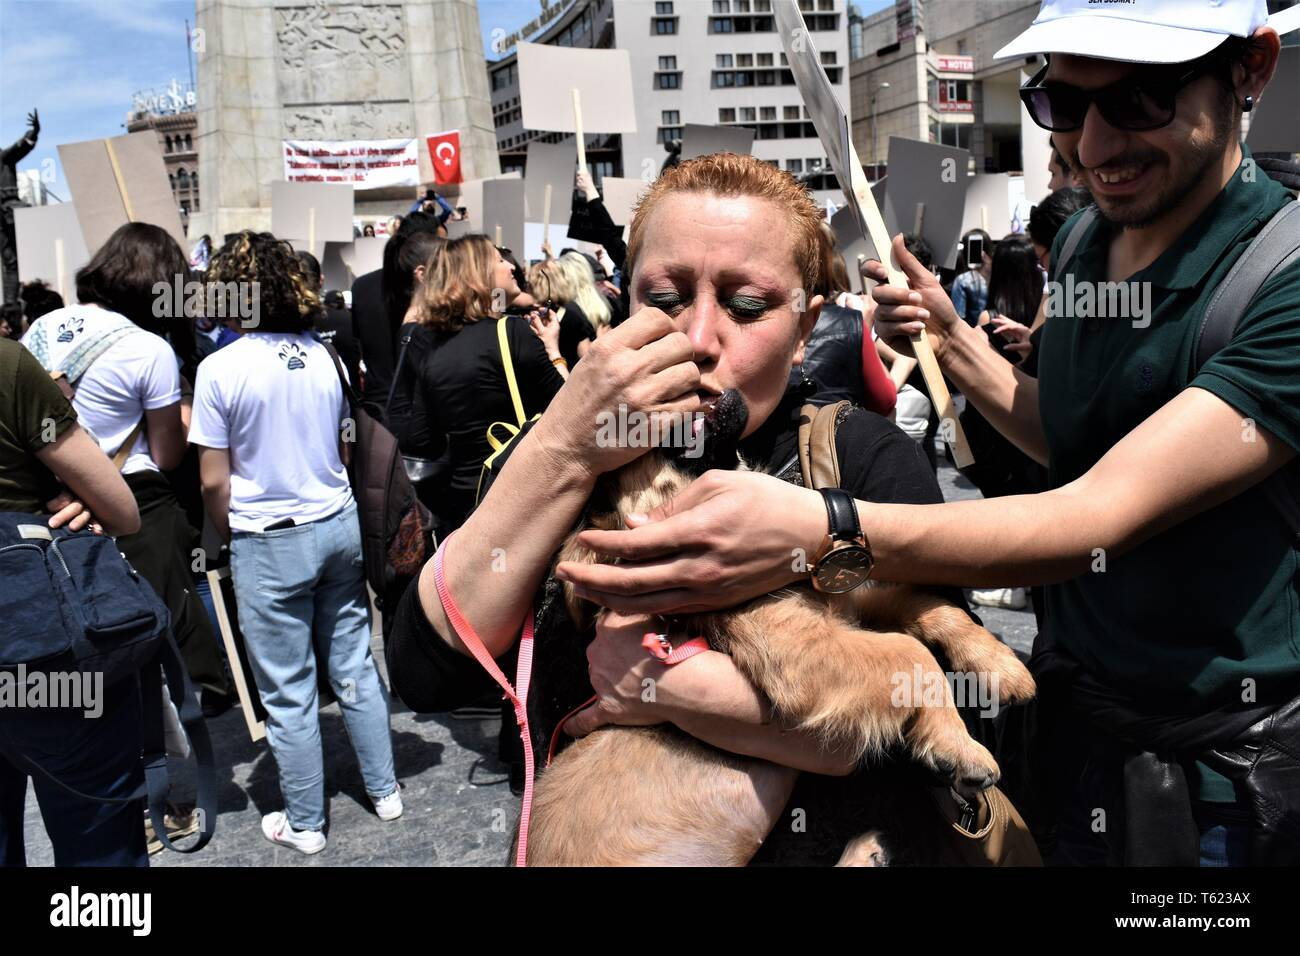 Ankara, Turkey. 28th Apr, 2019. A demonstrator kisses her dog during a protest for animal rights. Credit: Altan Gocher/ZUMA Wire/Alamy Live News - Stock Image